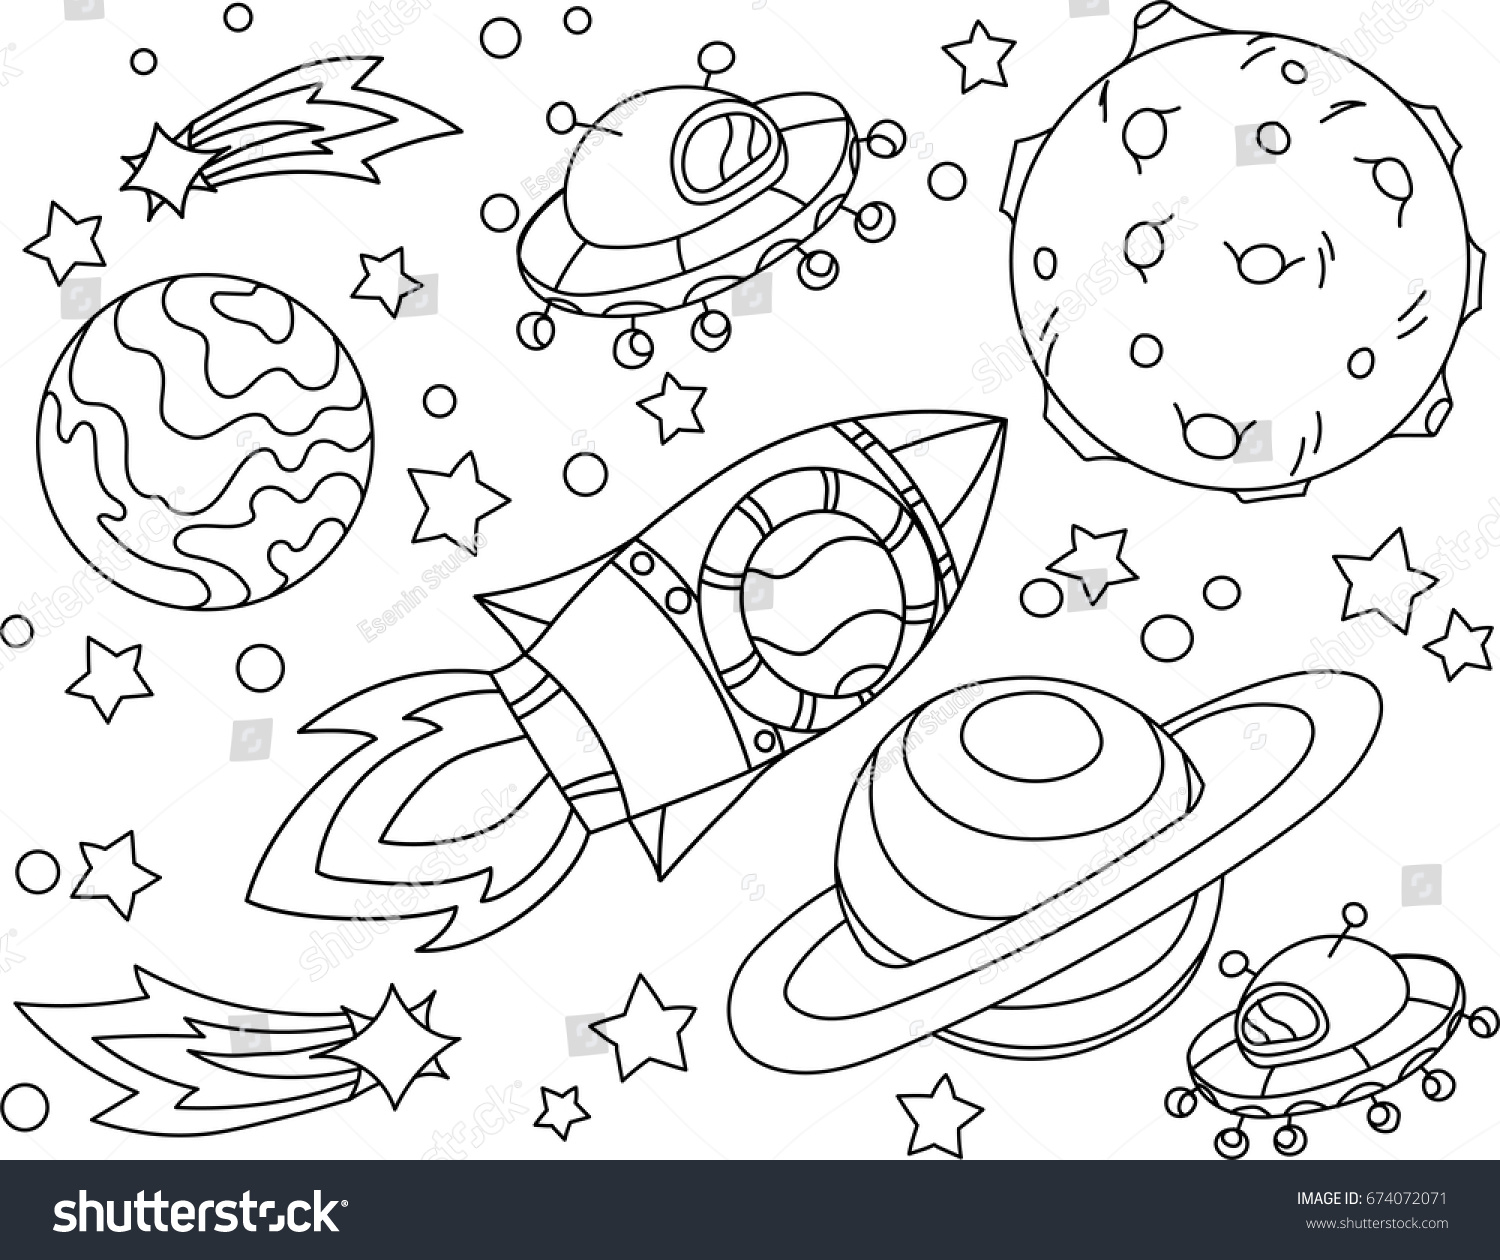 100 animal planet coloring pages best 10 kids animals ideas